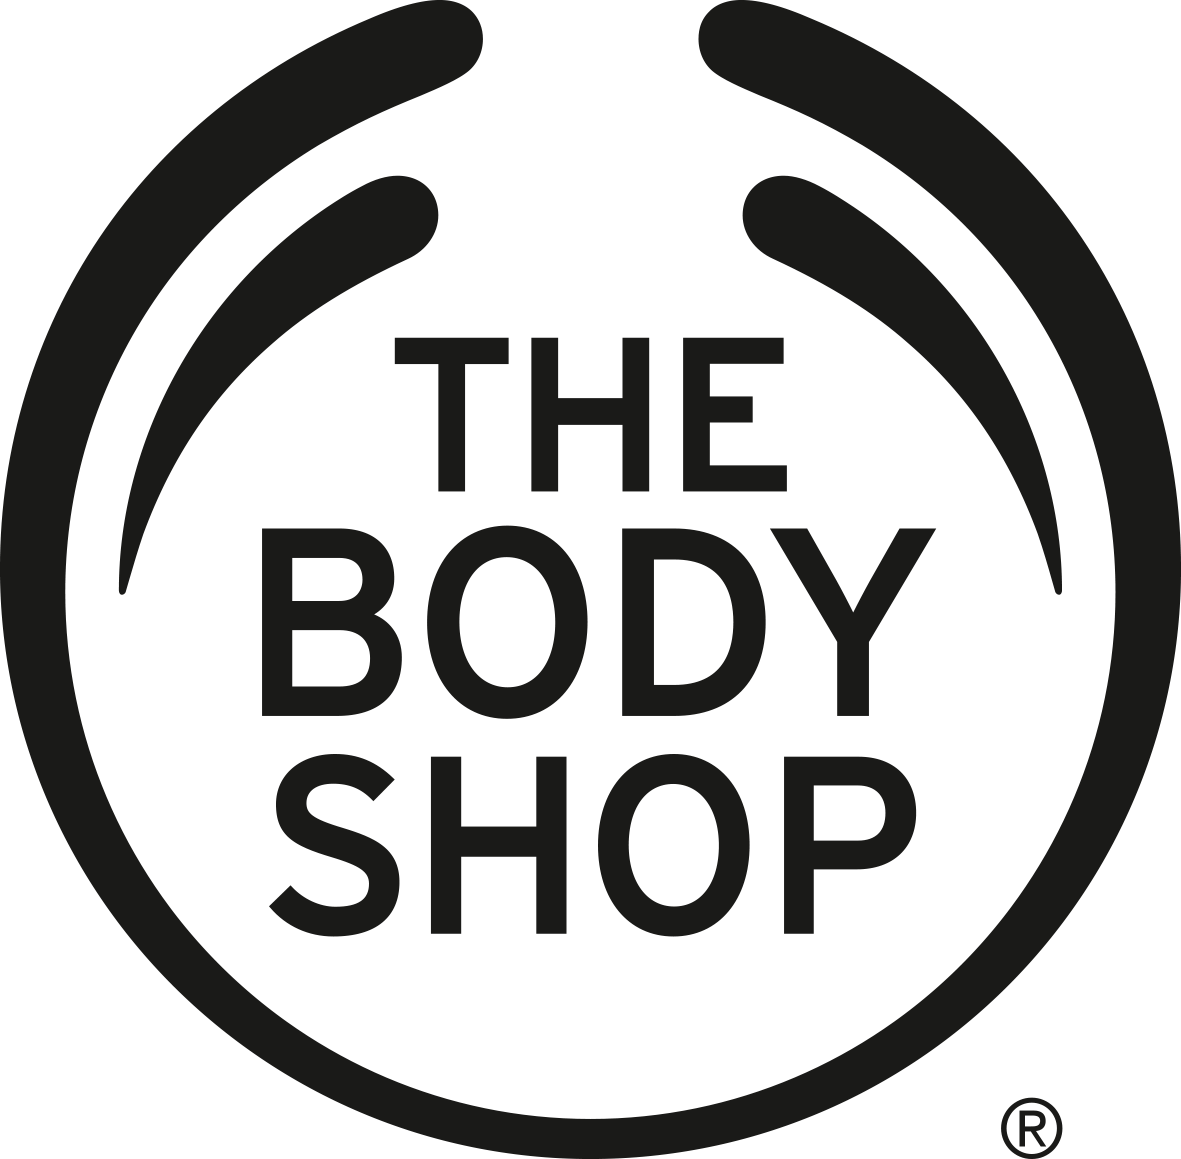 THE BODY SHOP OFFICIAL